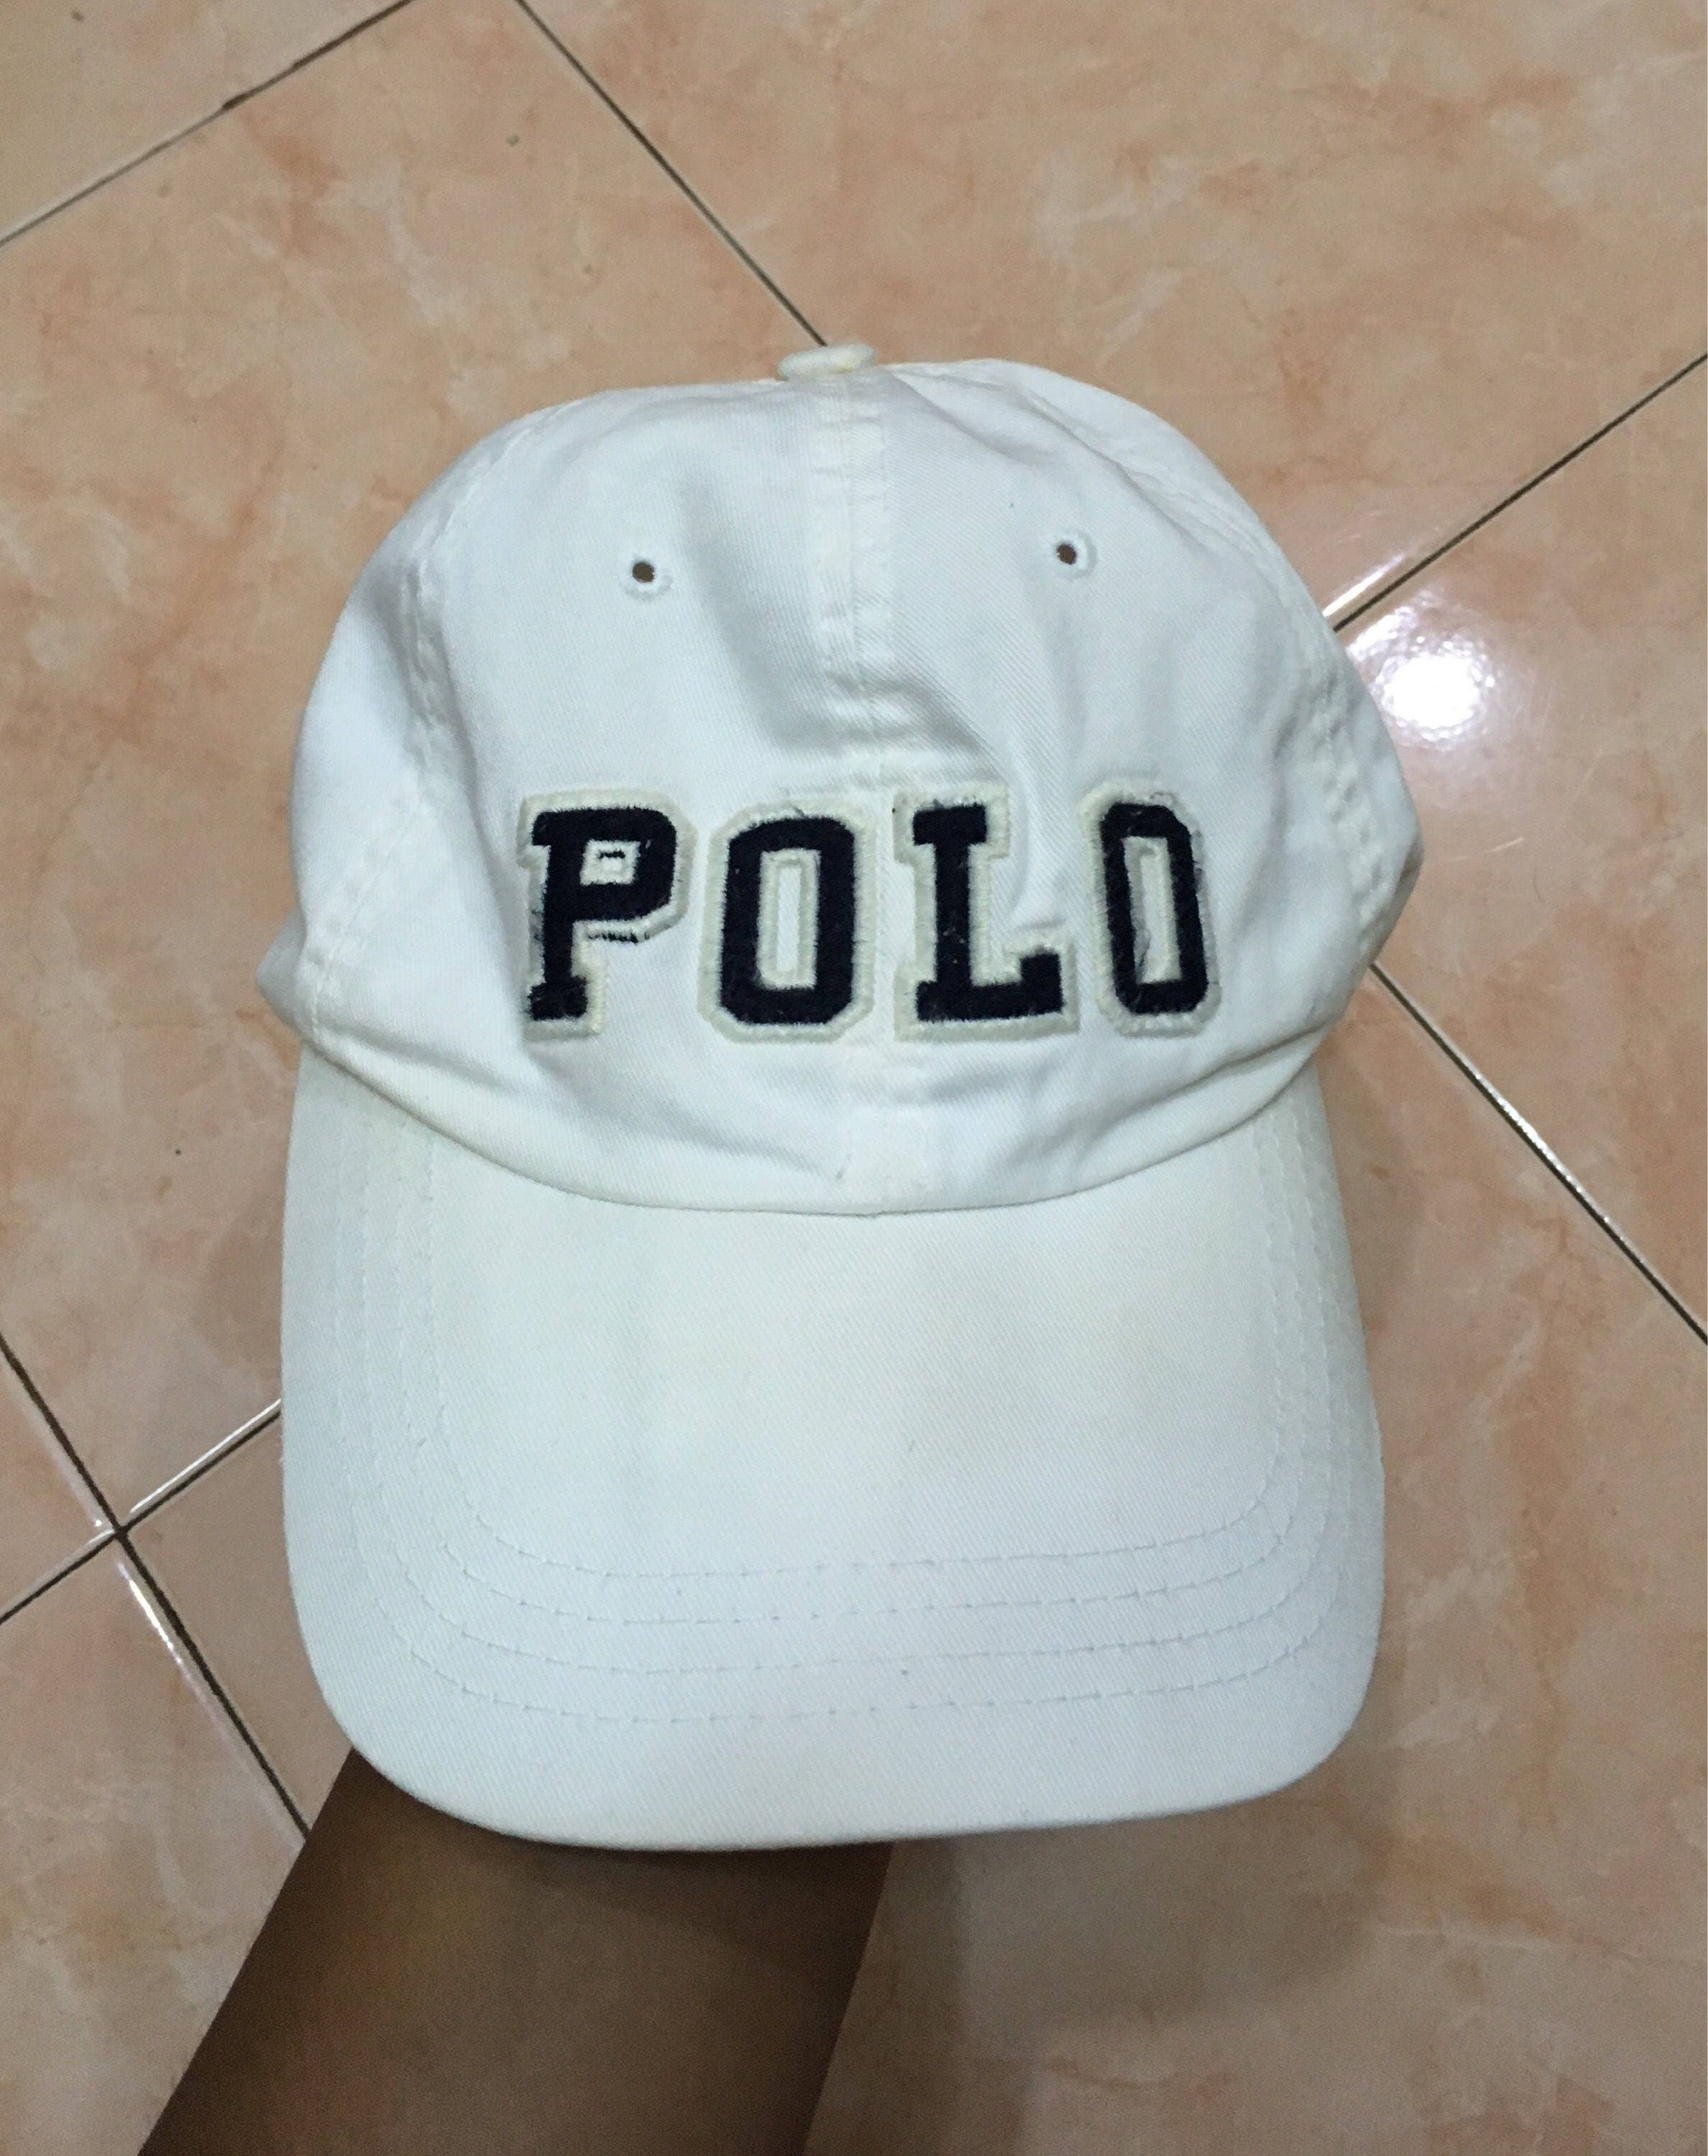 c25c1ee8924 Vintage 90s Polo by Ralph Lauren spell out big logo hat cap spell out big  logo